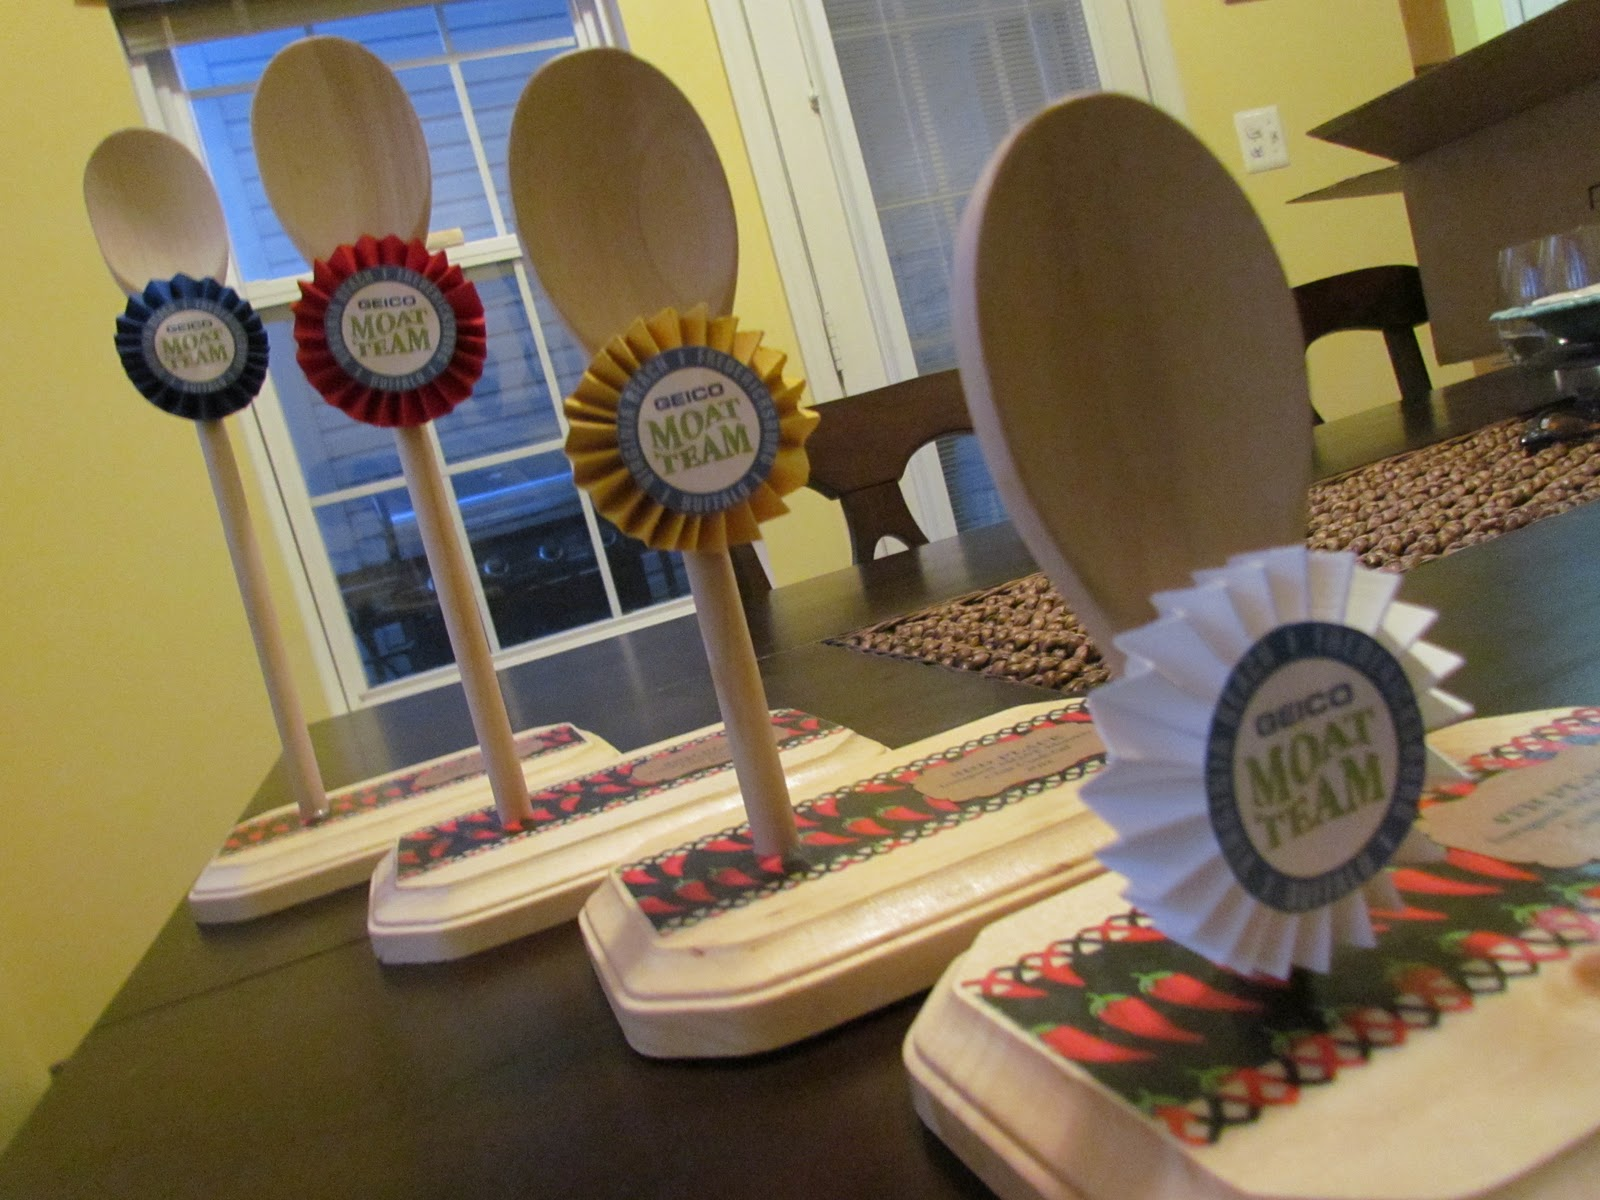 Another Crafty Day Husband Wifey Crafting Diy Award Trophies